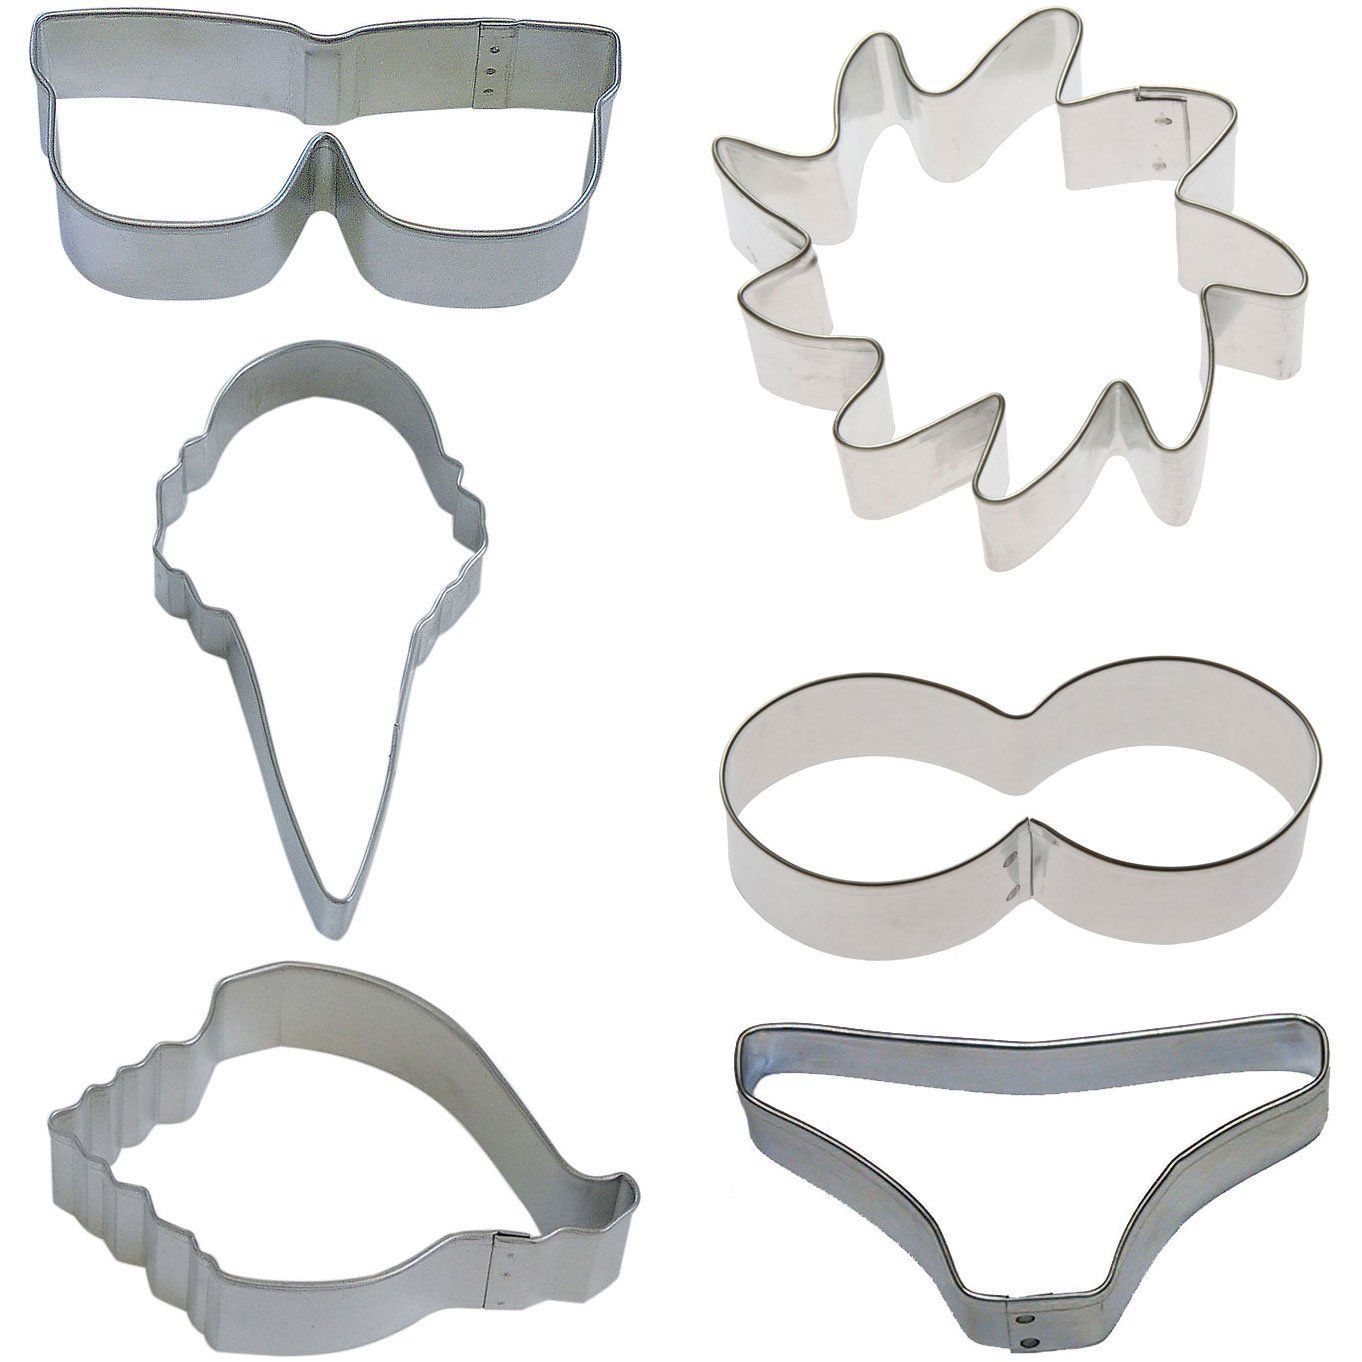 At the Beach Tin Cookie Cutter 6 Pc Set Ktbeach * Instant Savings available here : Baking Accessories